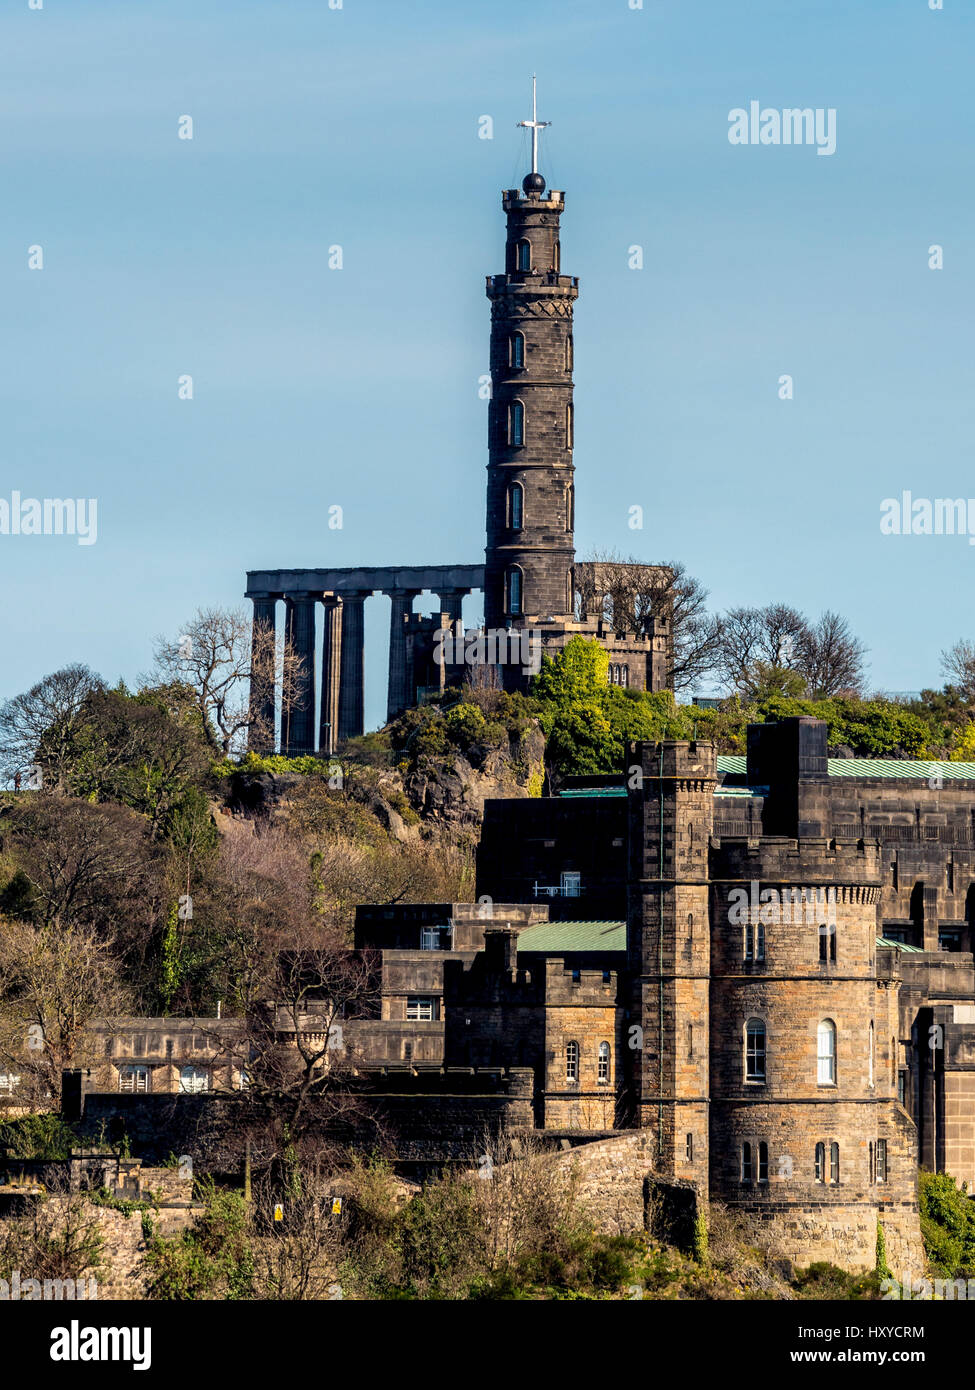 The Nelson Monument and National Monument of Scotland with the Governors House, Calton Hill, Edinburgh, Scotland. Stock Photo